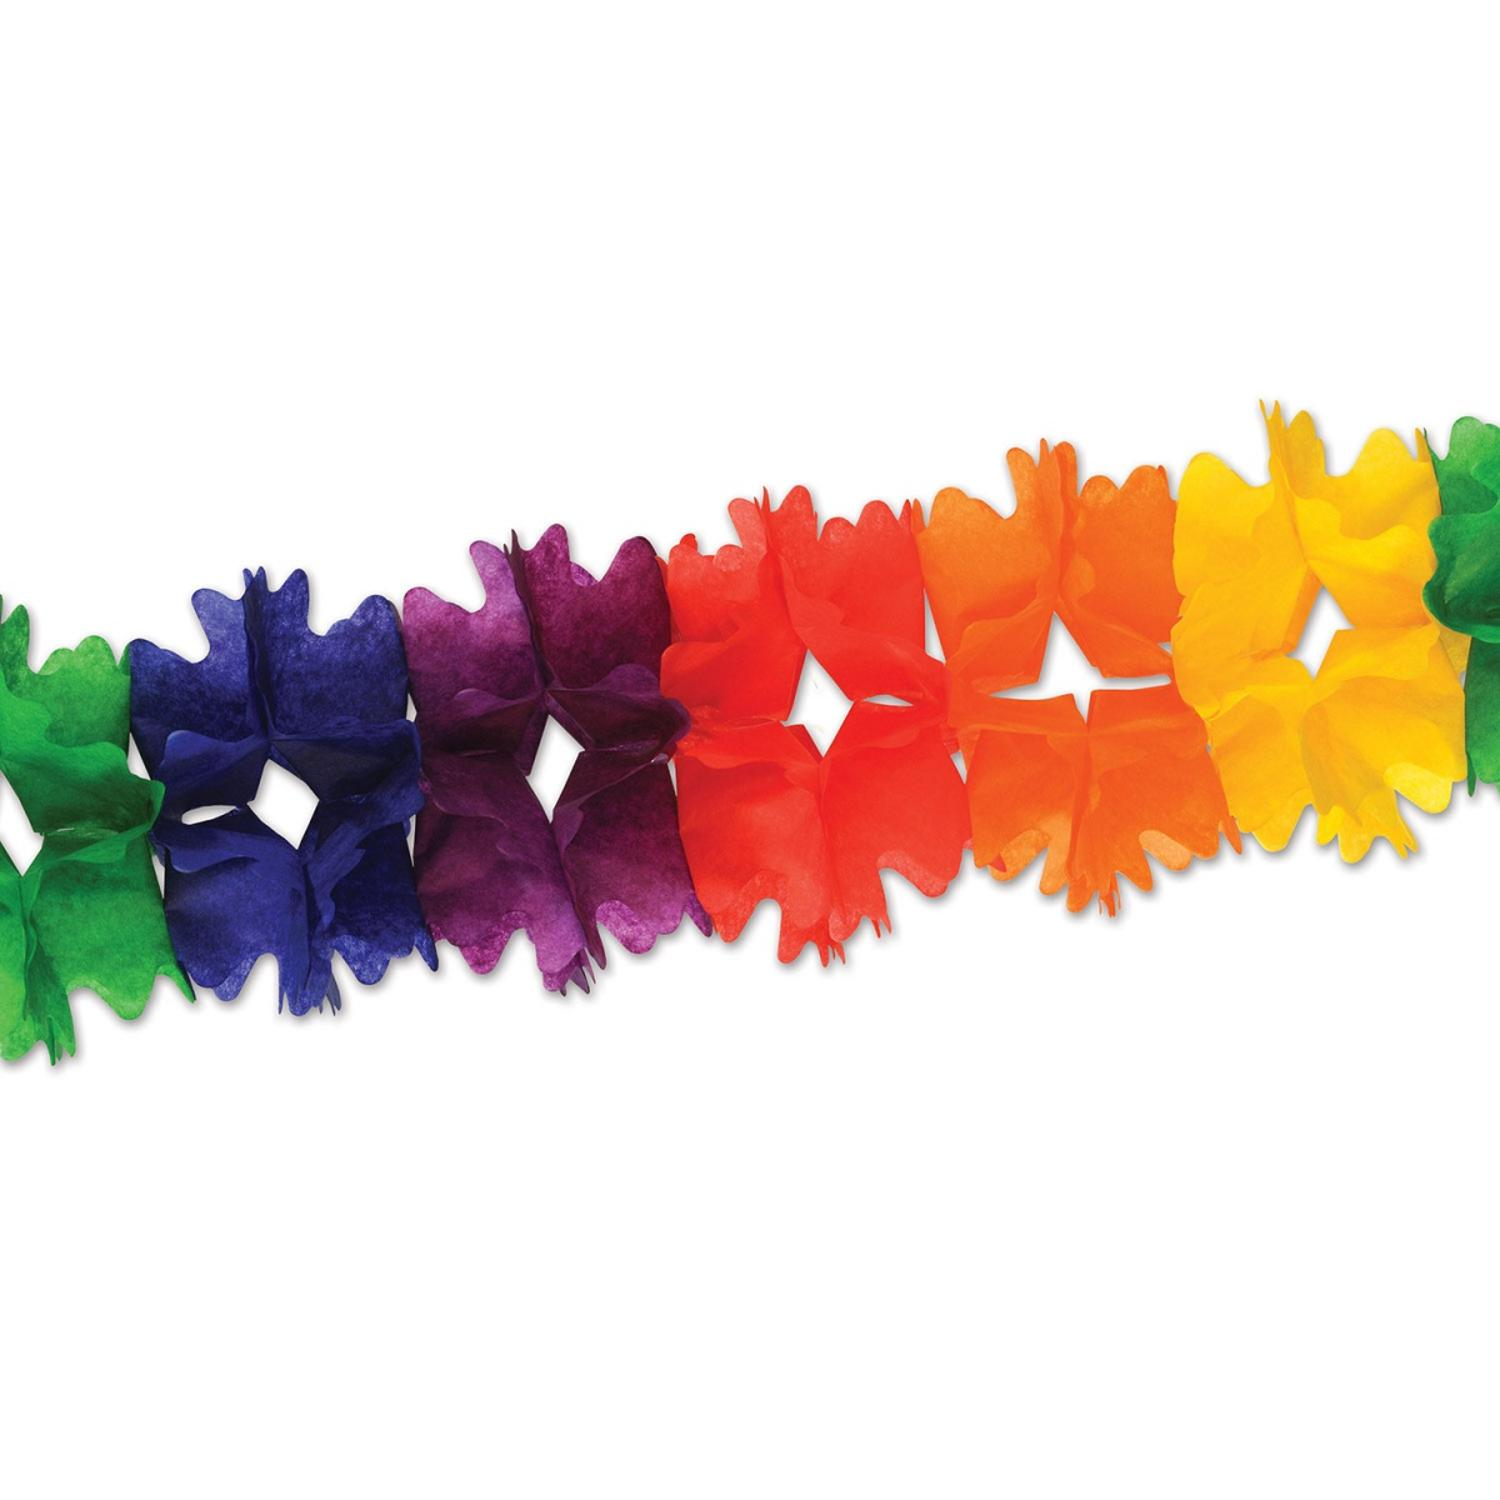 Club Pack of 12 Bold Rainbow Festive Pageant Garland Decorations 14.5'